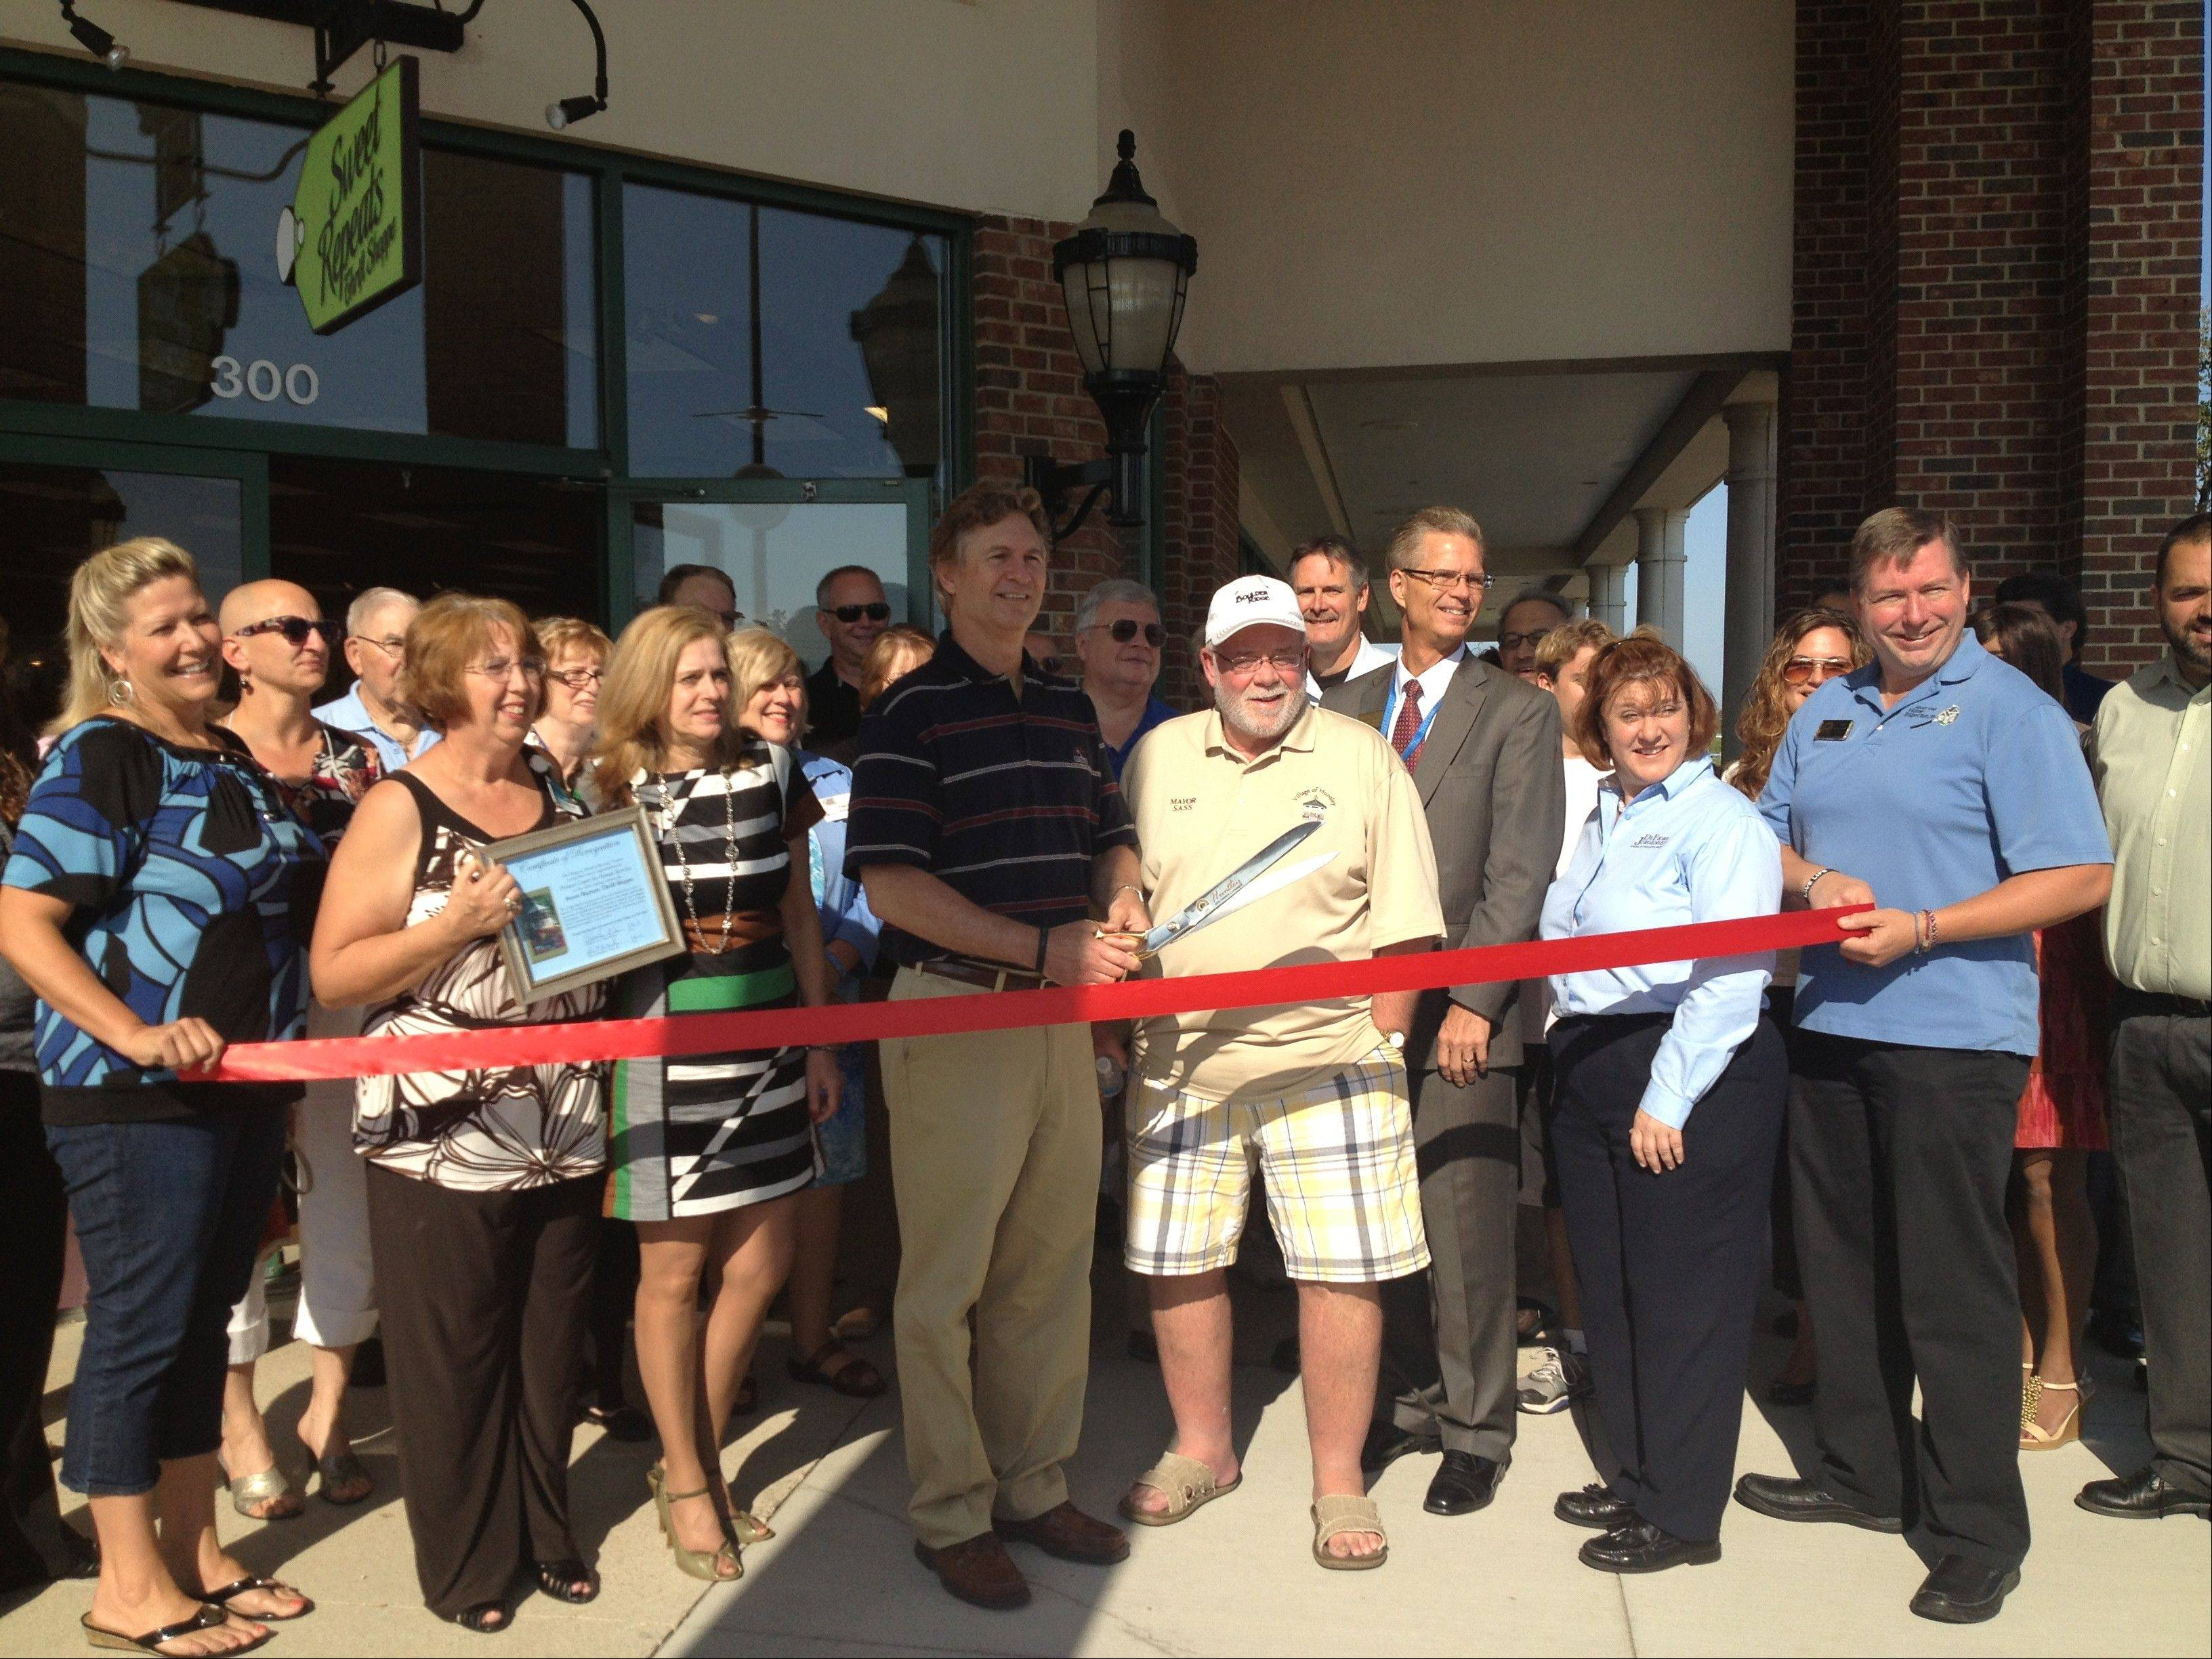 Pioneer Center CEO Patrick Maynard and Huntley Mayor Chuck Sass cut the ribbon at the grand opening of the new location for the Sweet Repeats Thrift Shoppe on Aug. 16.